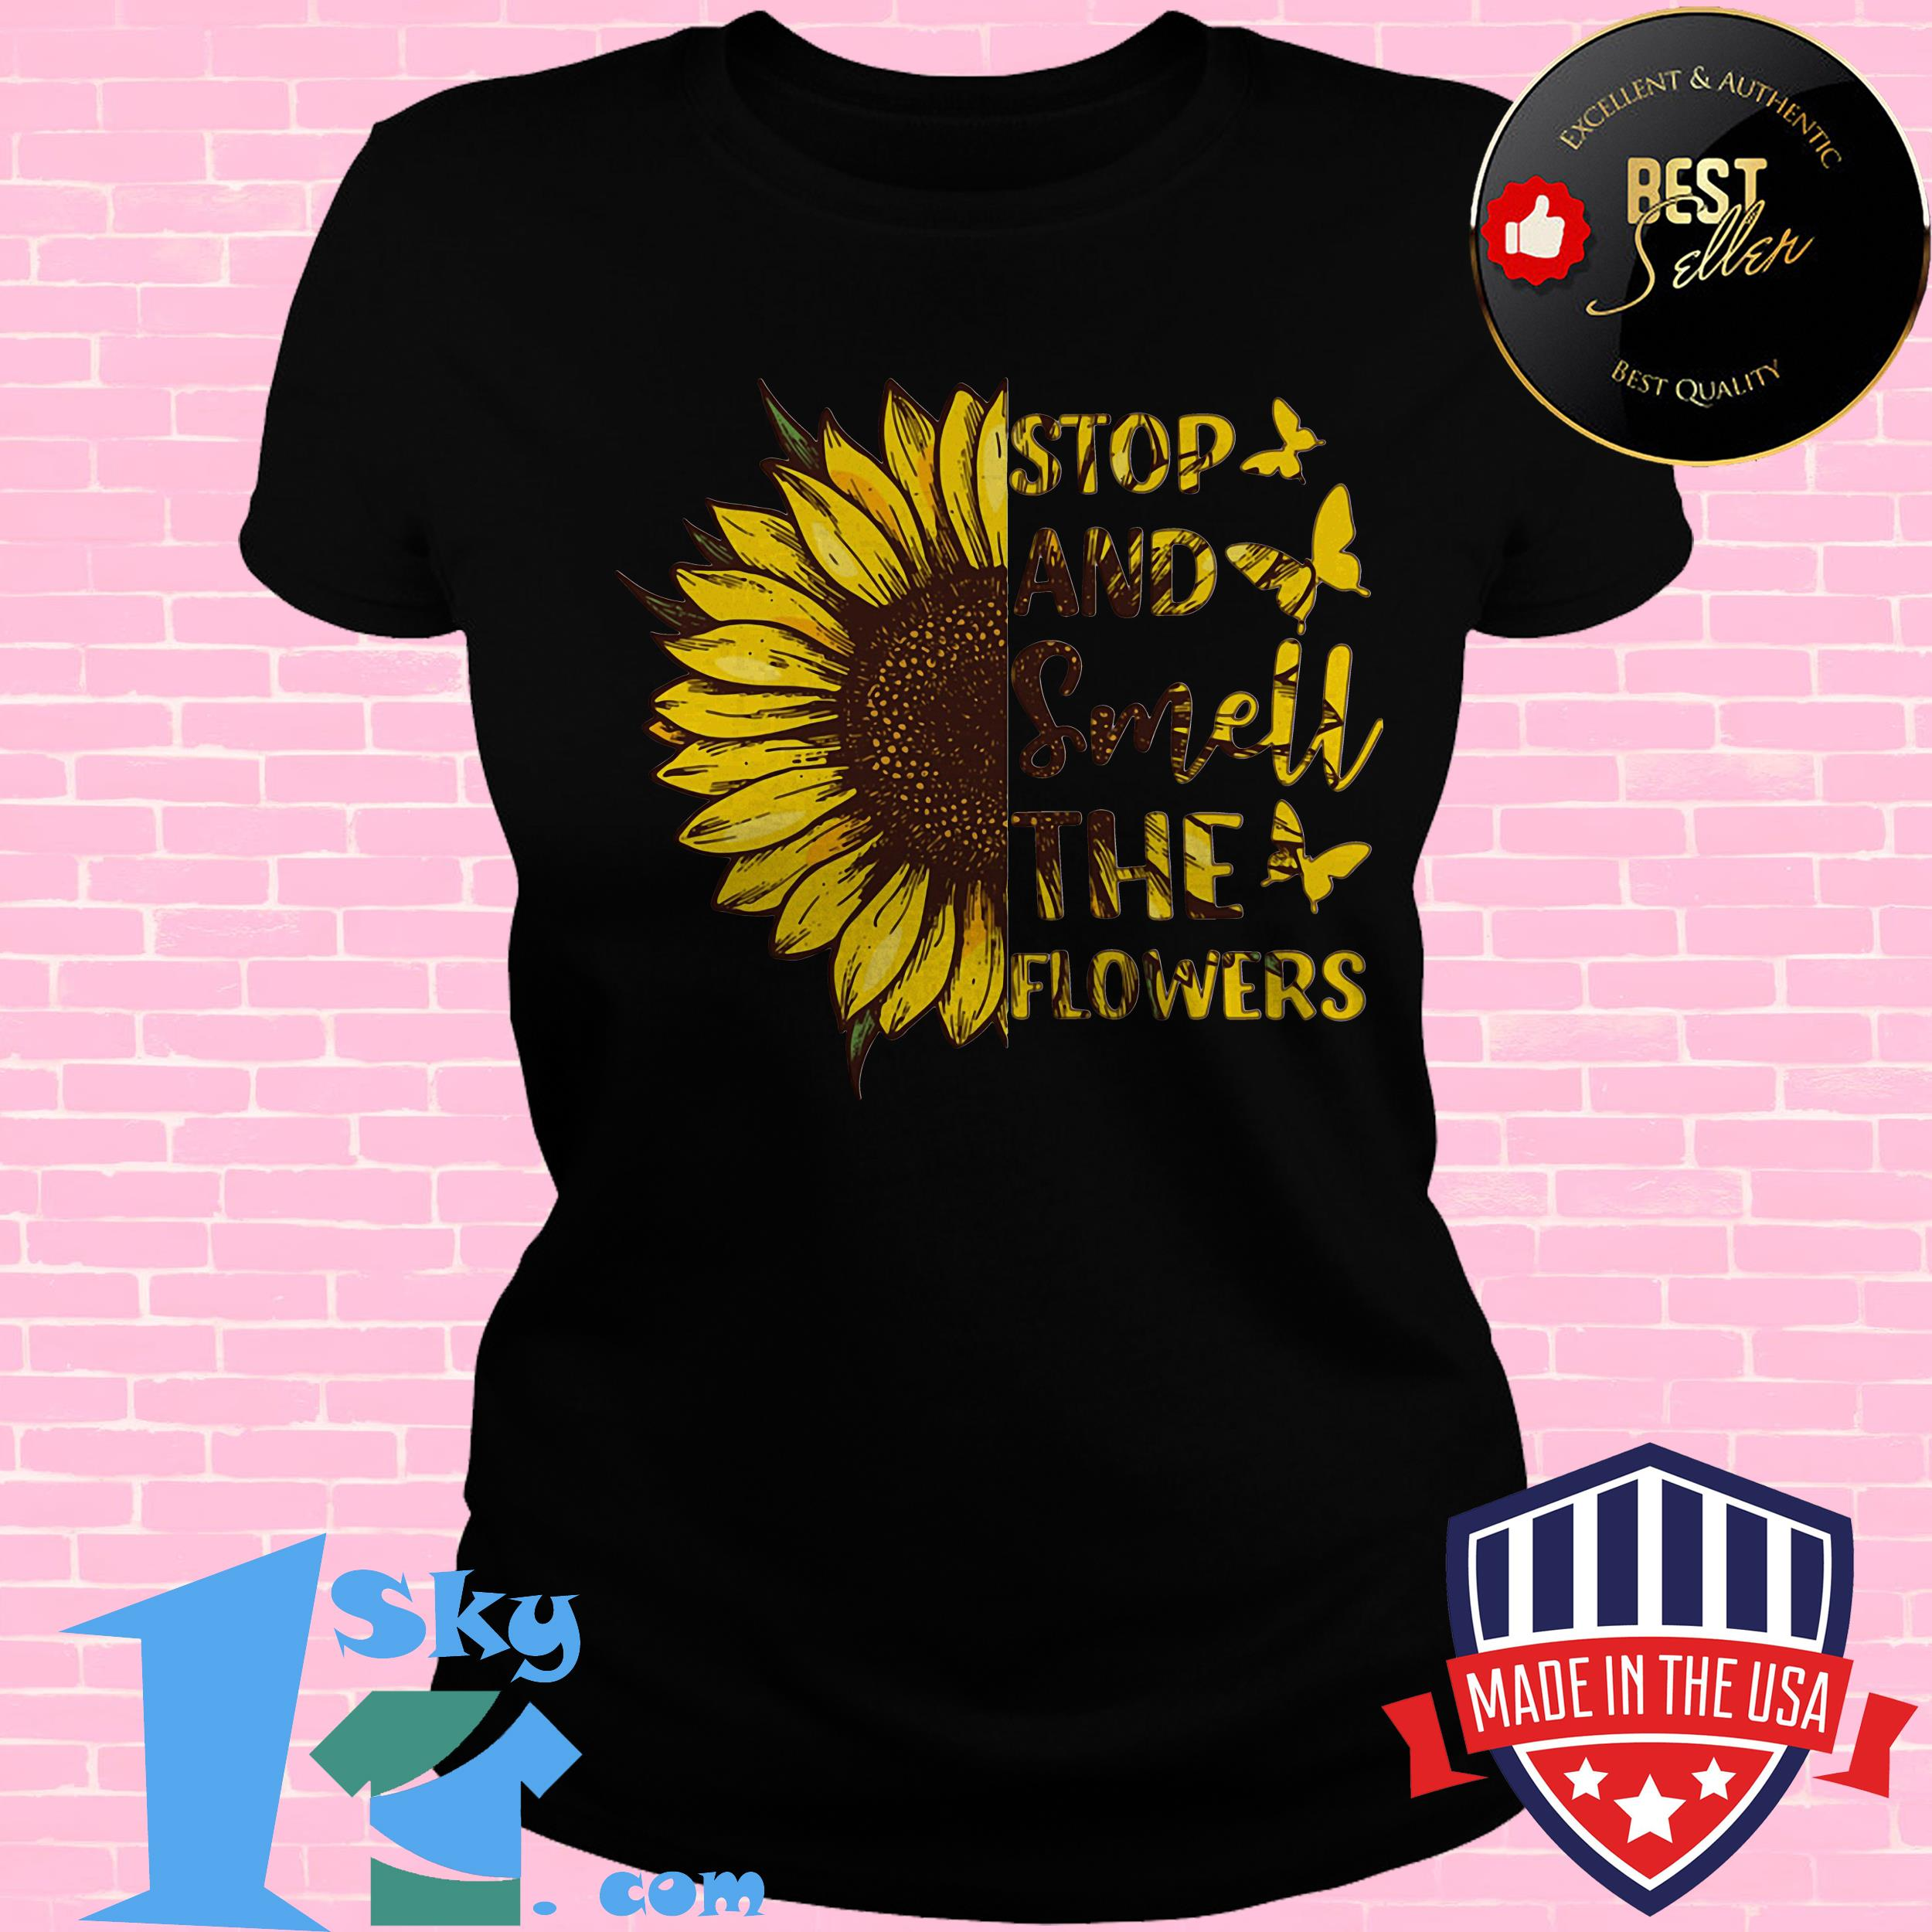 butterfly and sunflower stop and smell the flowers ladies tee - Butterfly and Sunflower Stop And Smell The Flowers shirt